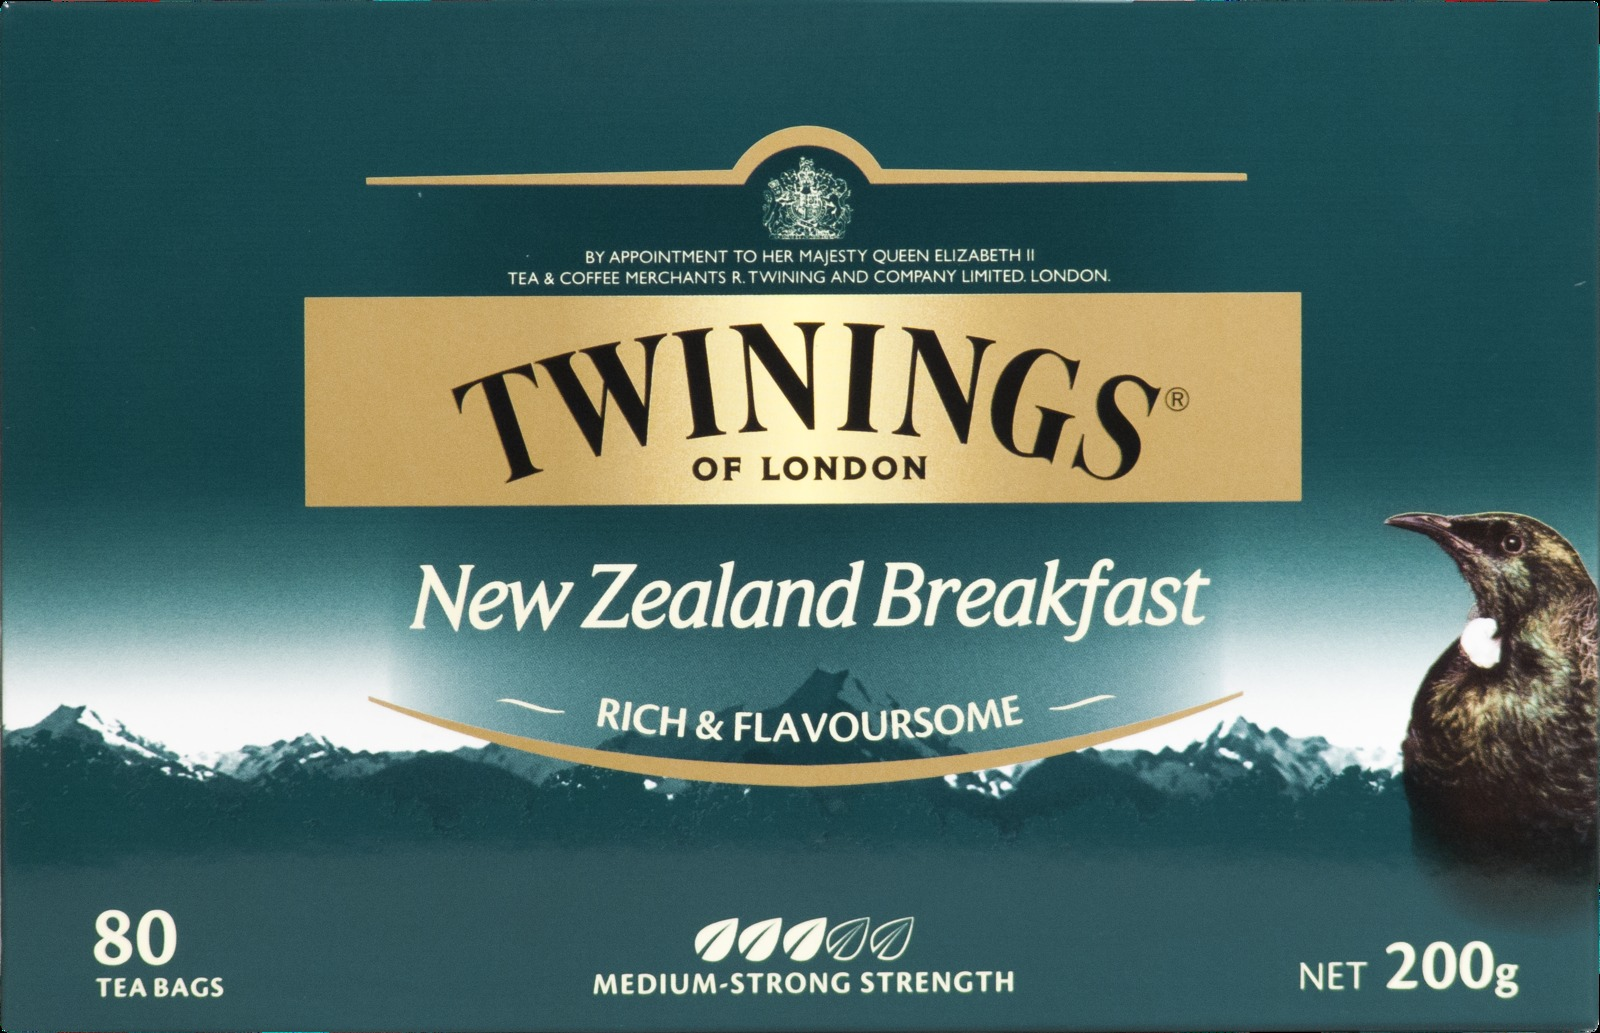 New zealand brands of tea -  Twinings New Zealand Breakfast Tea Bags 80 Bags Image